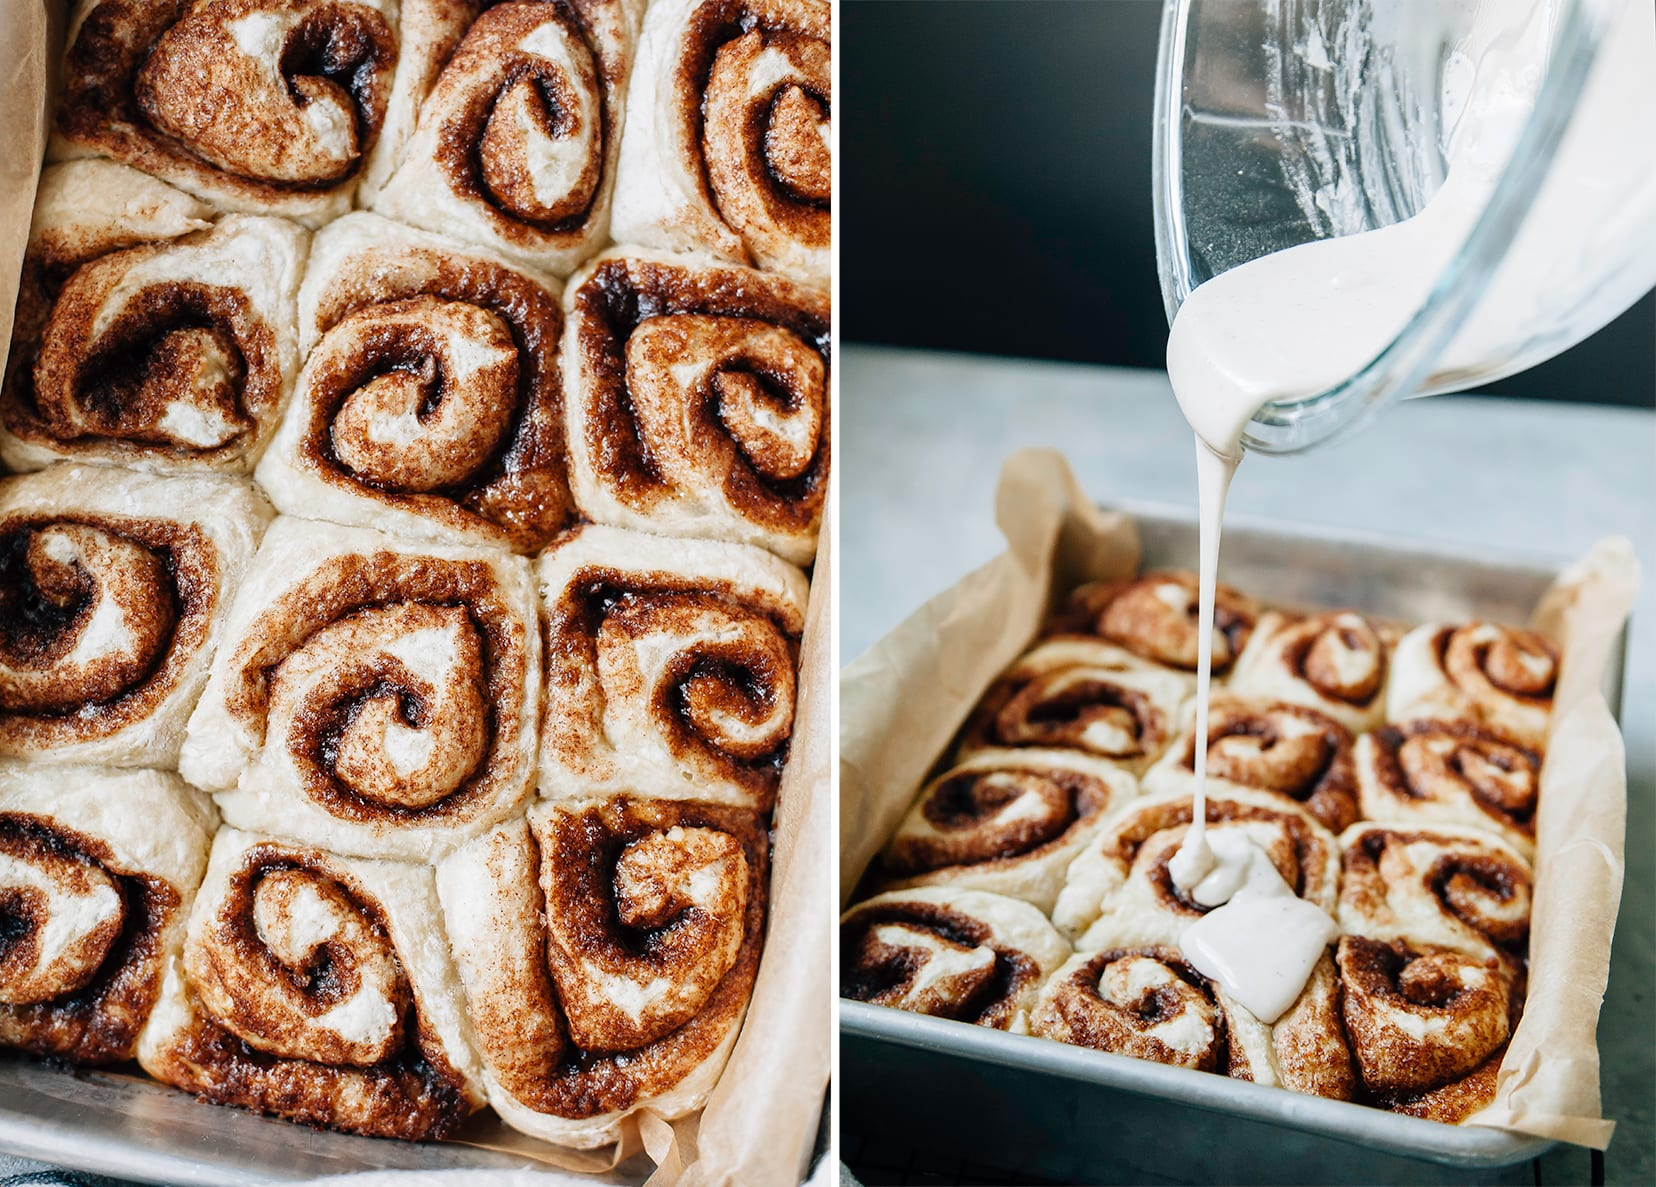 Two images show baked cinnamon rolls and icing being poured on top of a pan of cinnamon rolls.